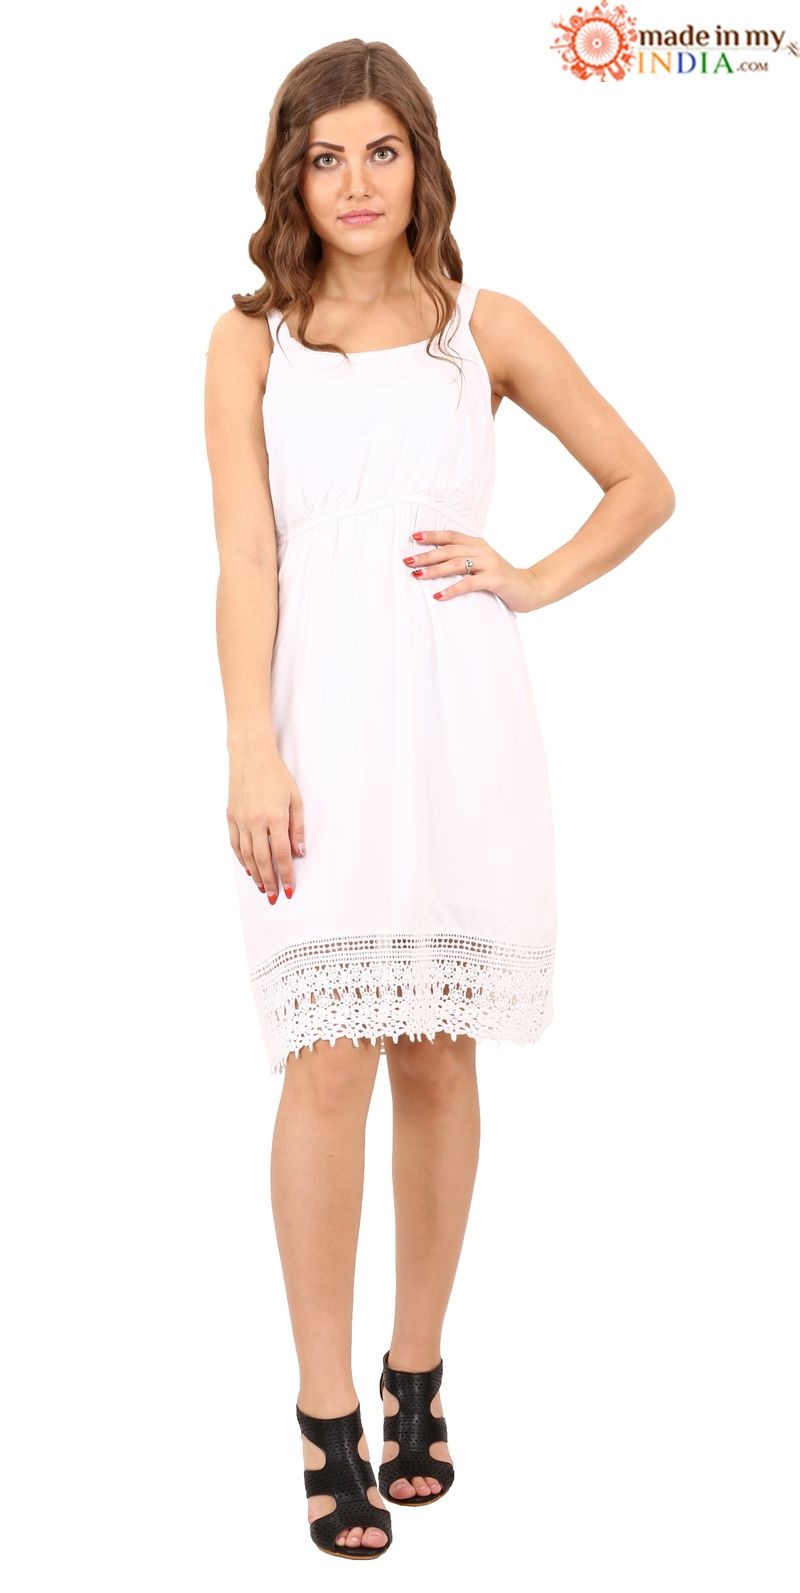 dc8dac32b7011 White Magic ❄ ⛄ Shop This Dress @ madeinmyindia.com Whatsapp at ...